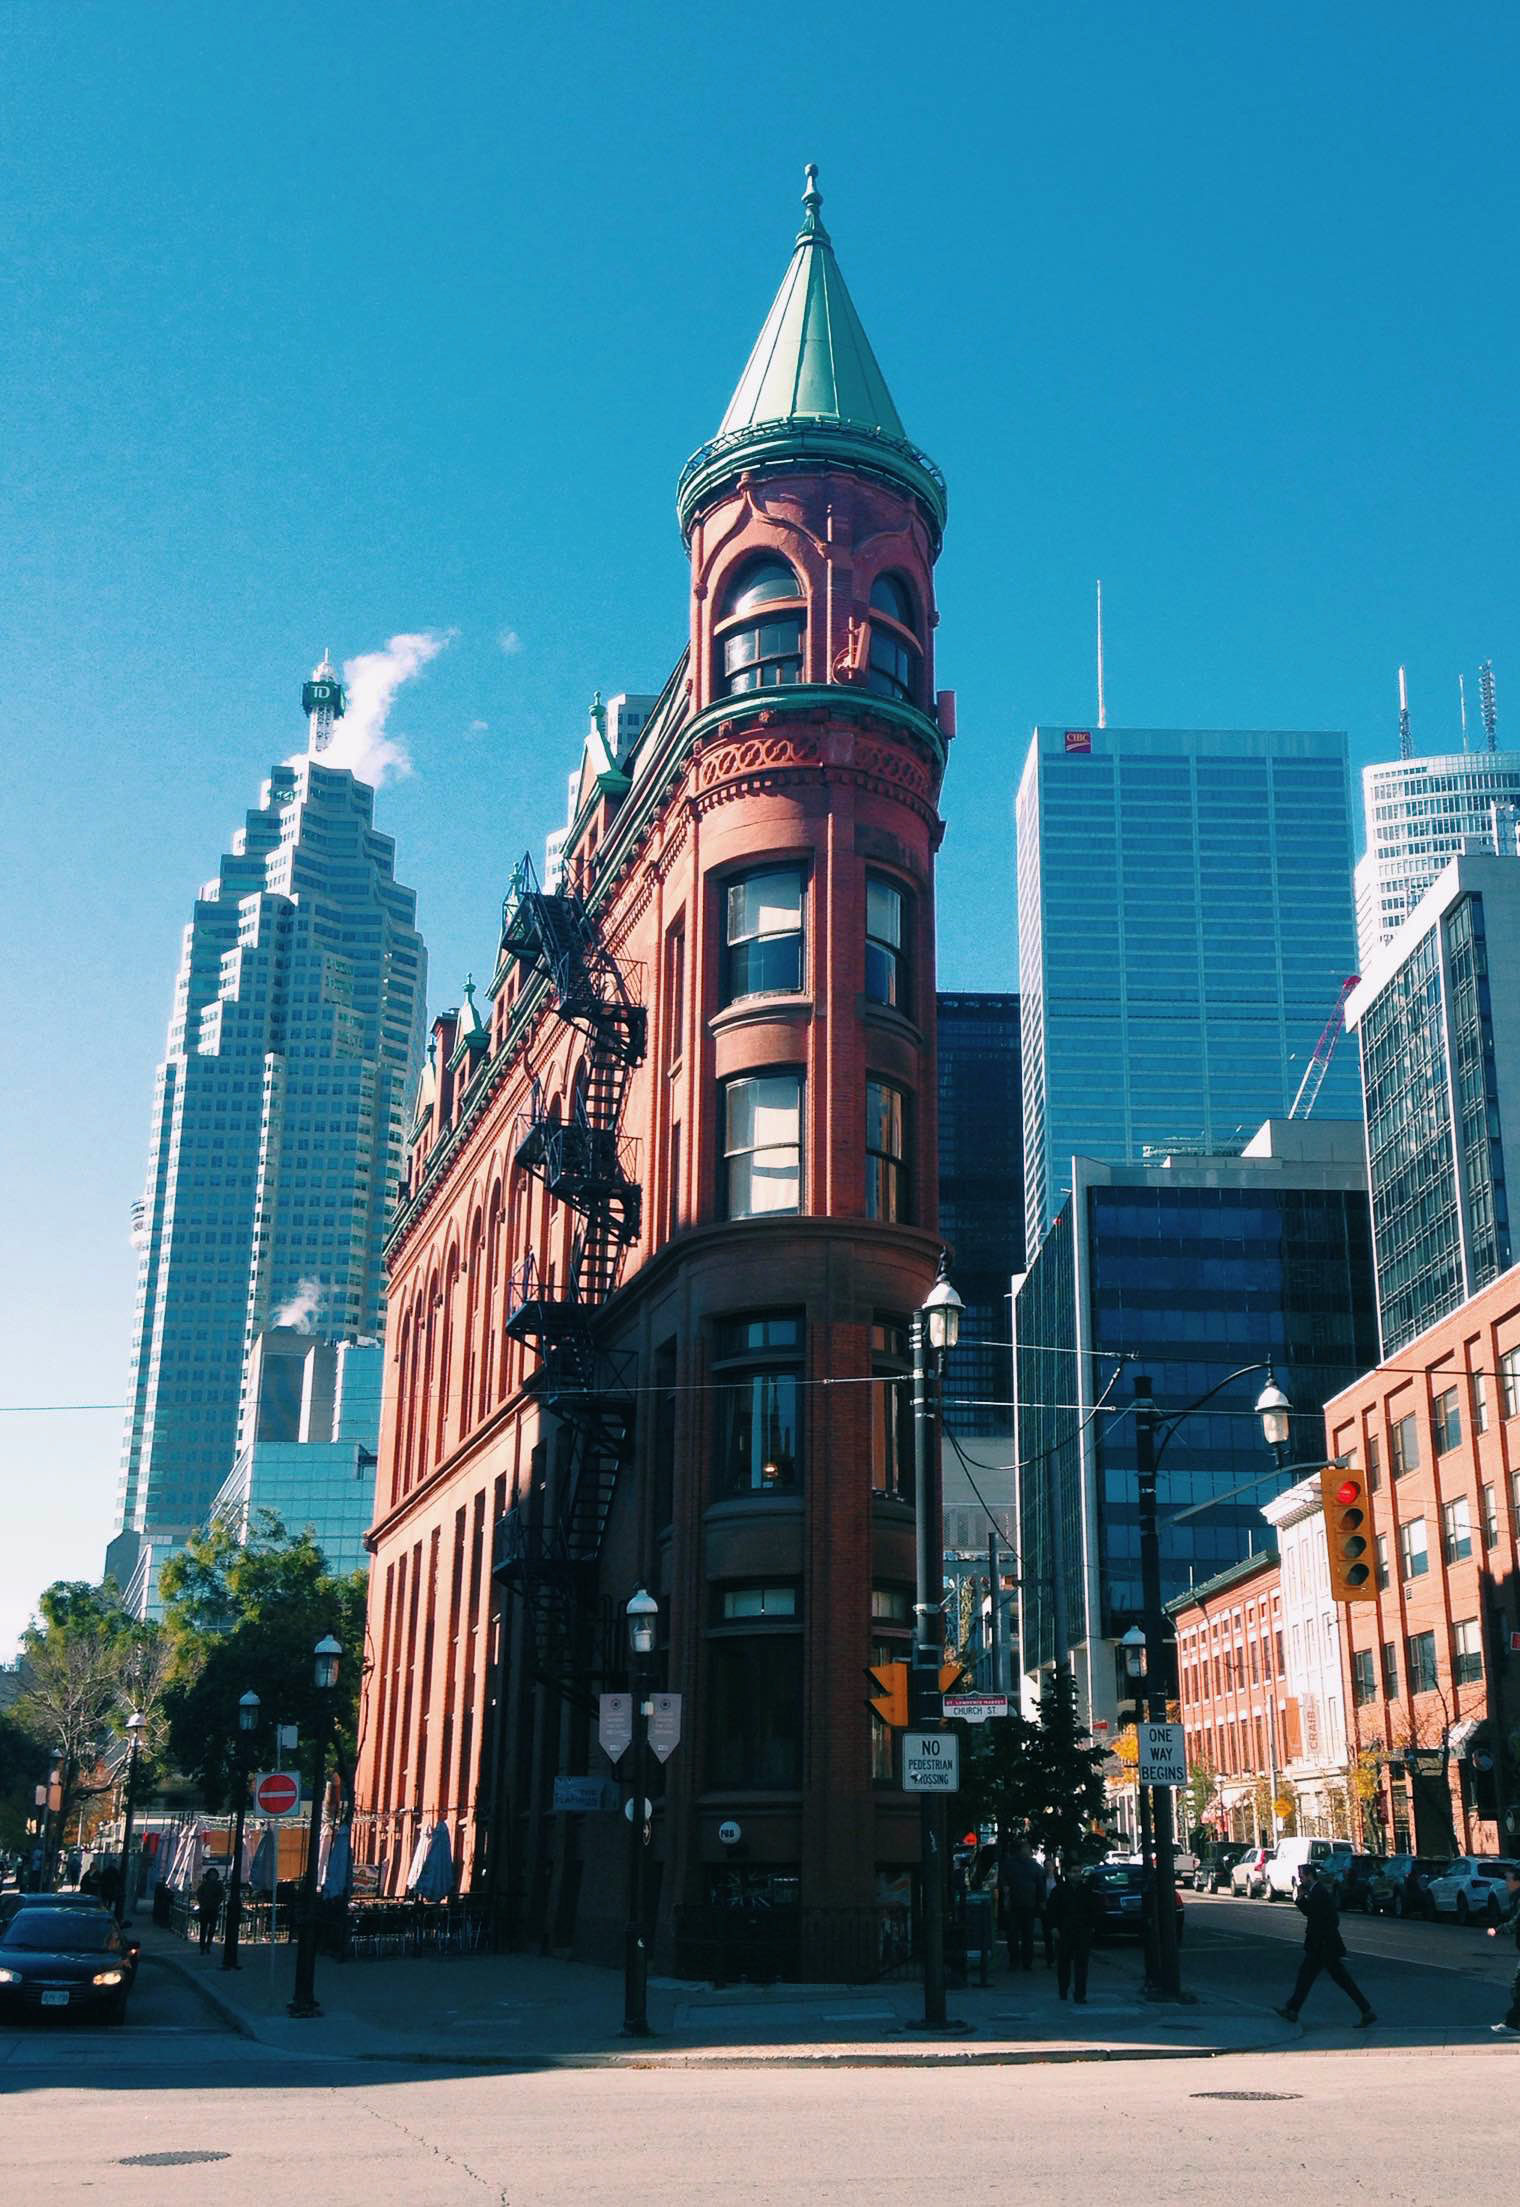 The Gooderham Building, located in Toronto's Distillery District, is the perfect place to explore during long breaks between classes. October 24